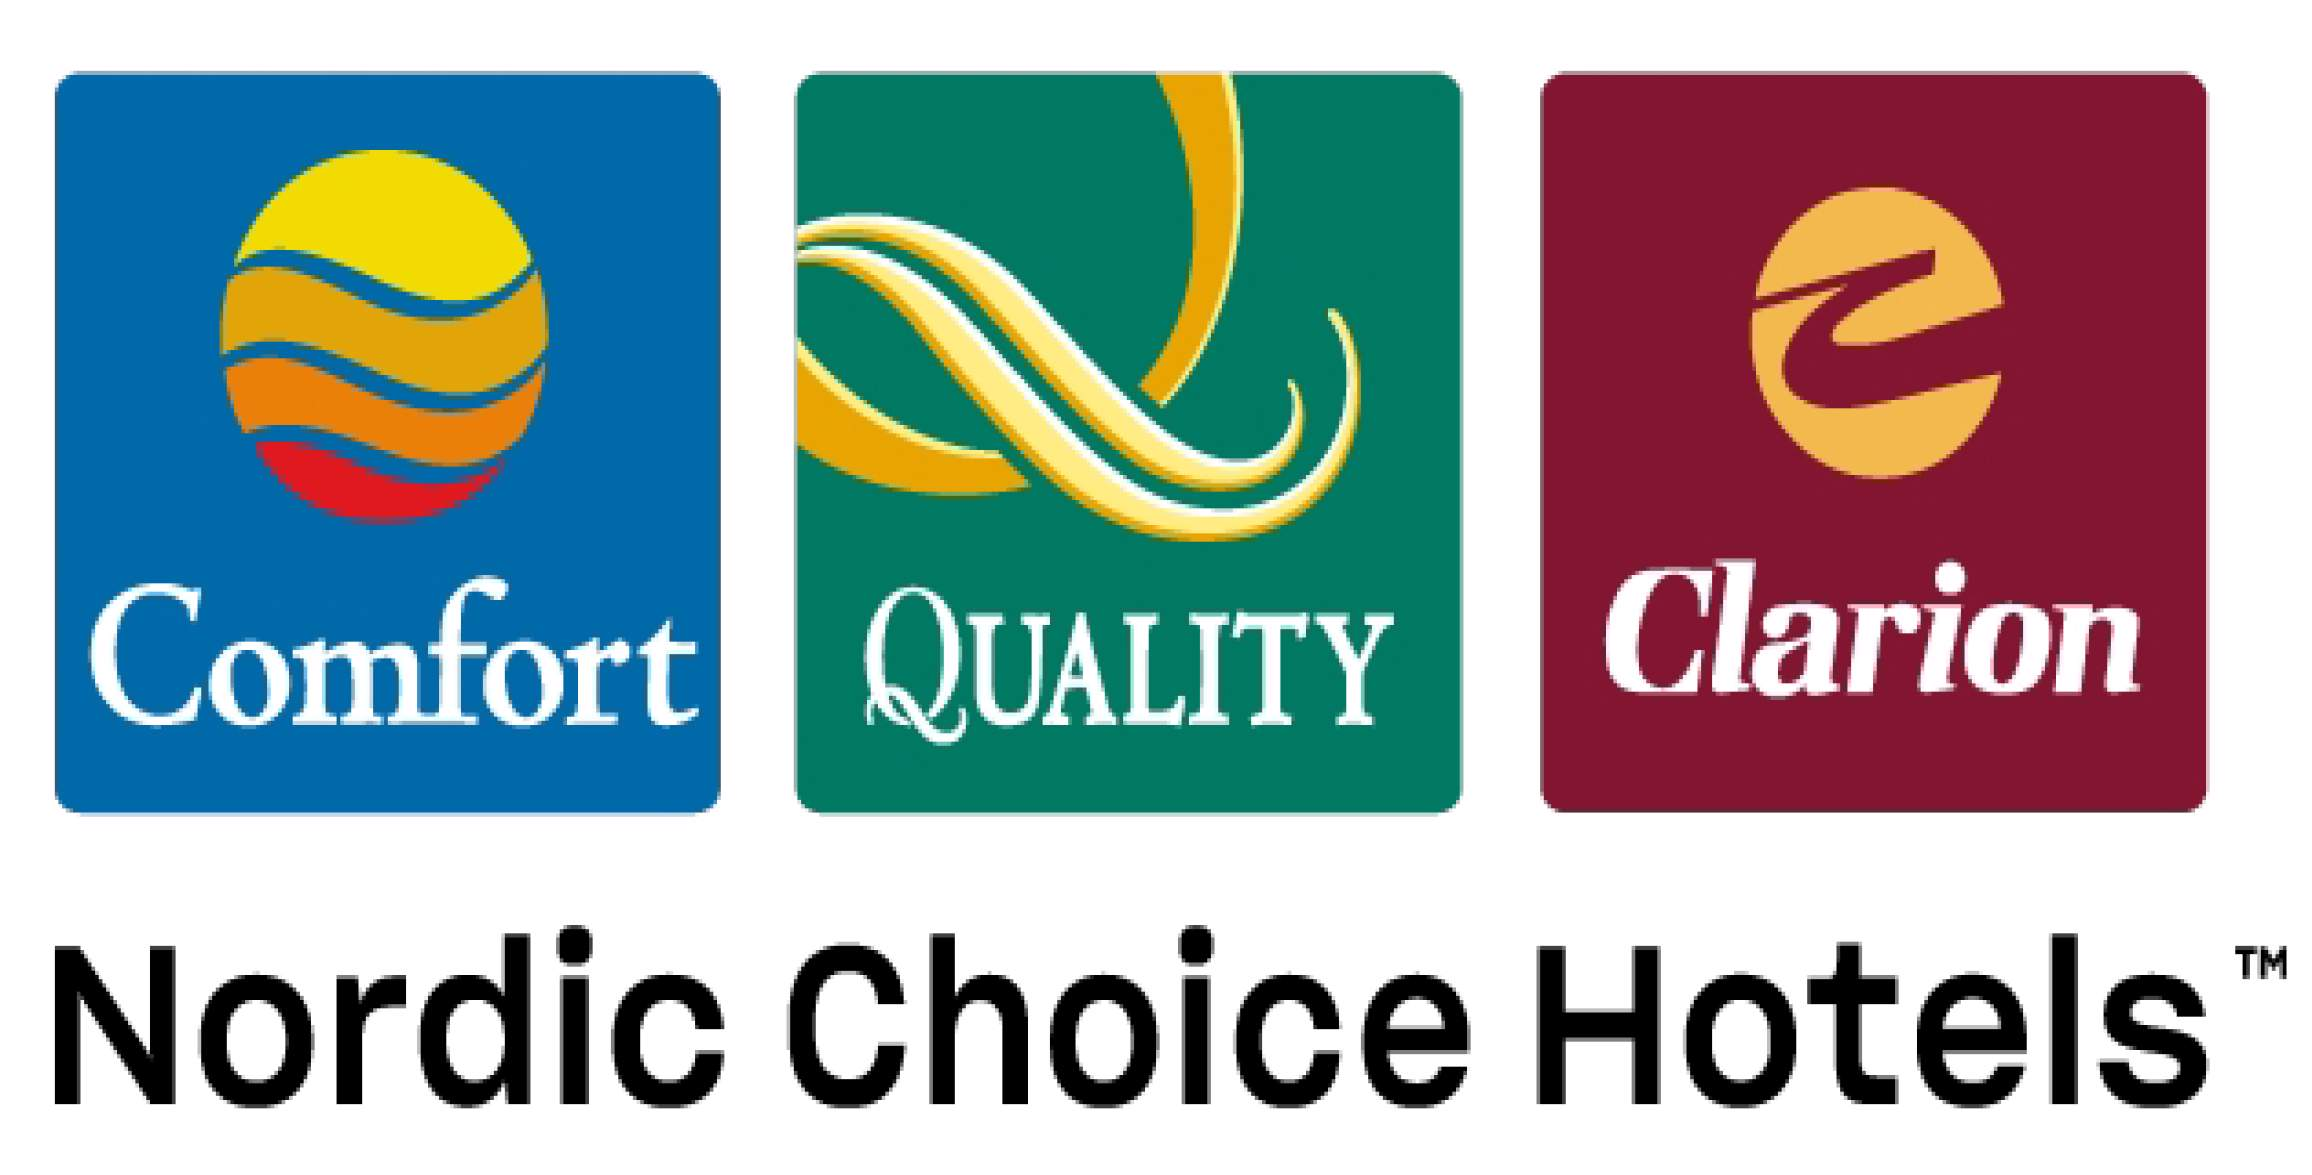 Nordic Choice Hotels AS